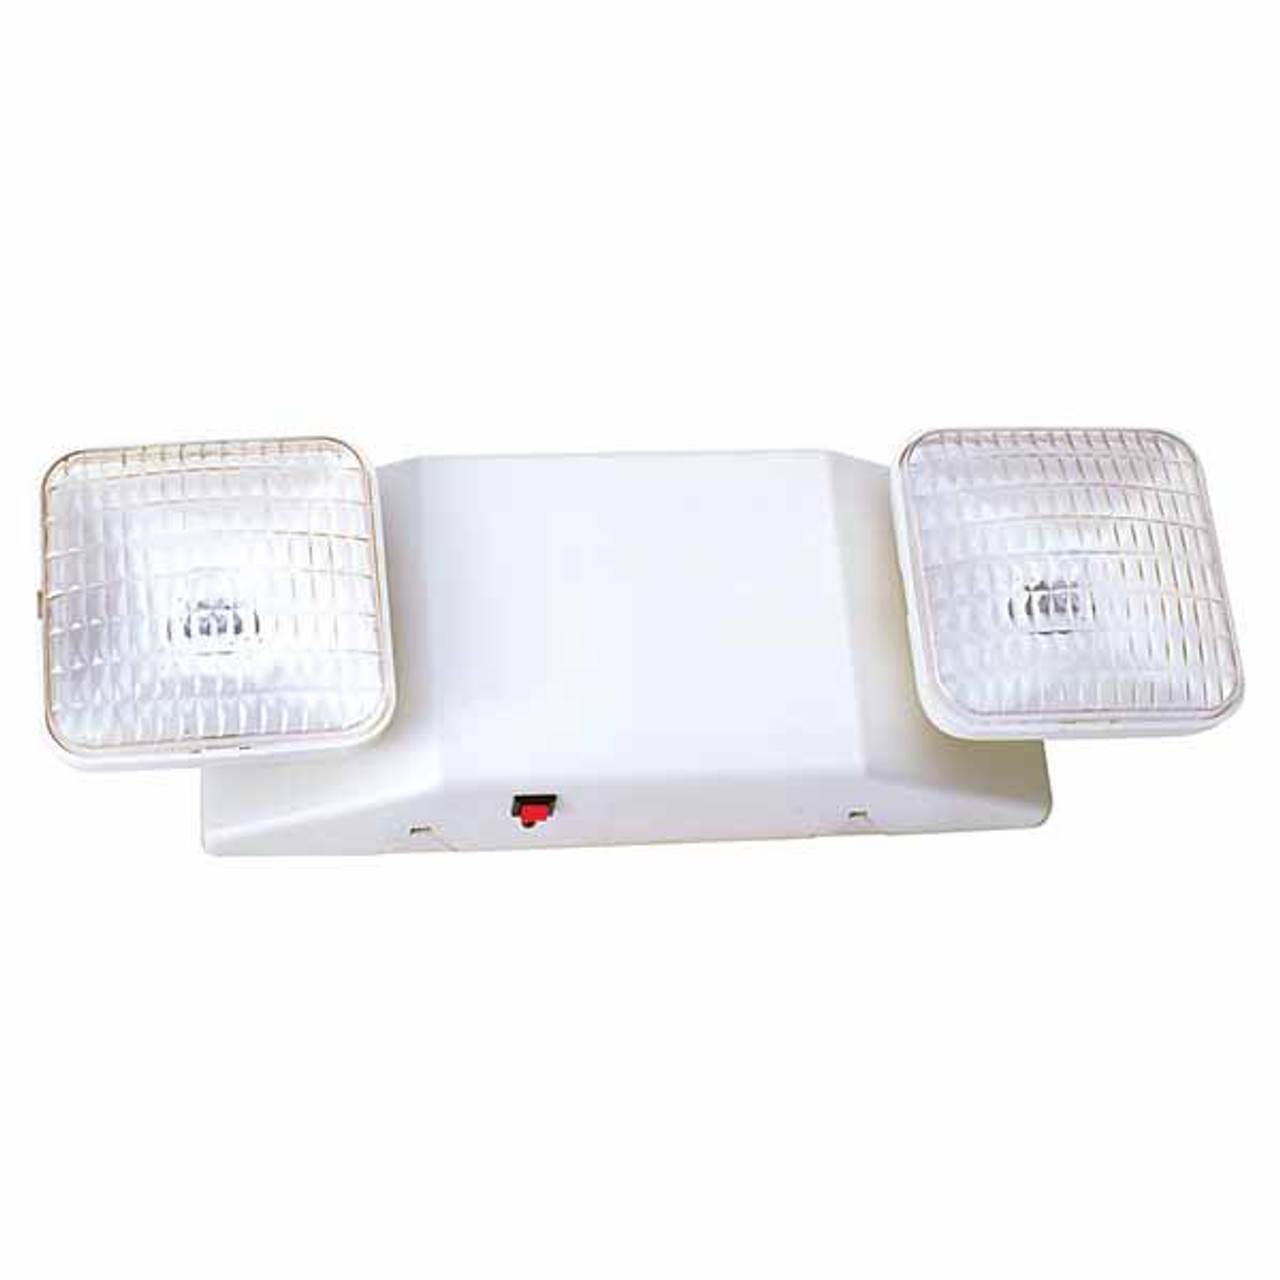 2 Head Adjustable White Emergency Light with Battery Backup